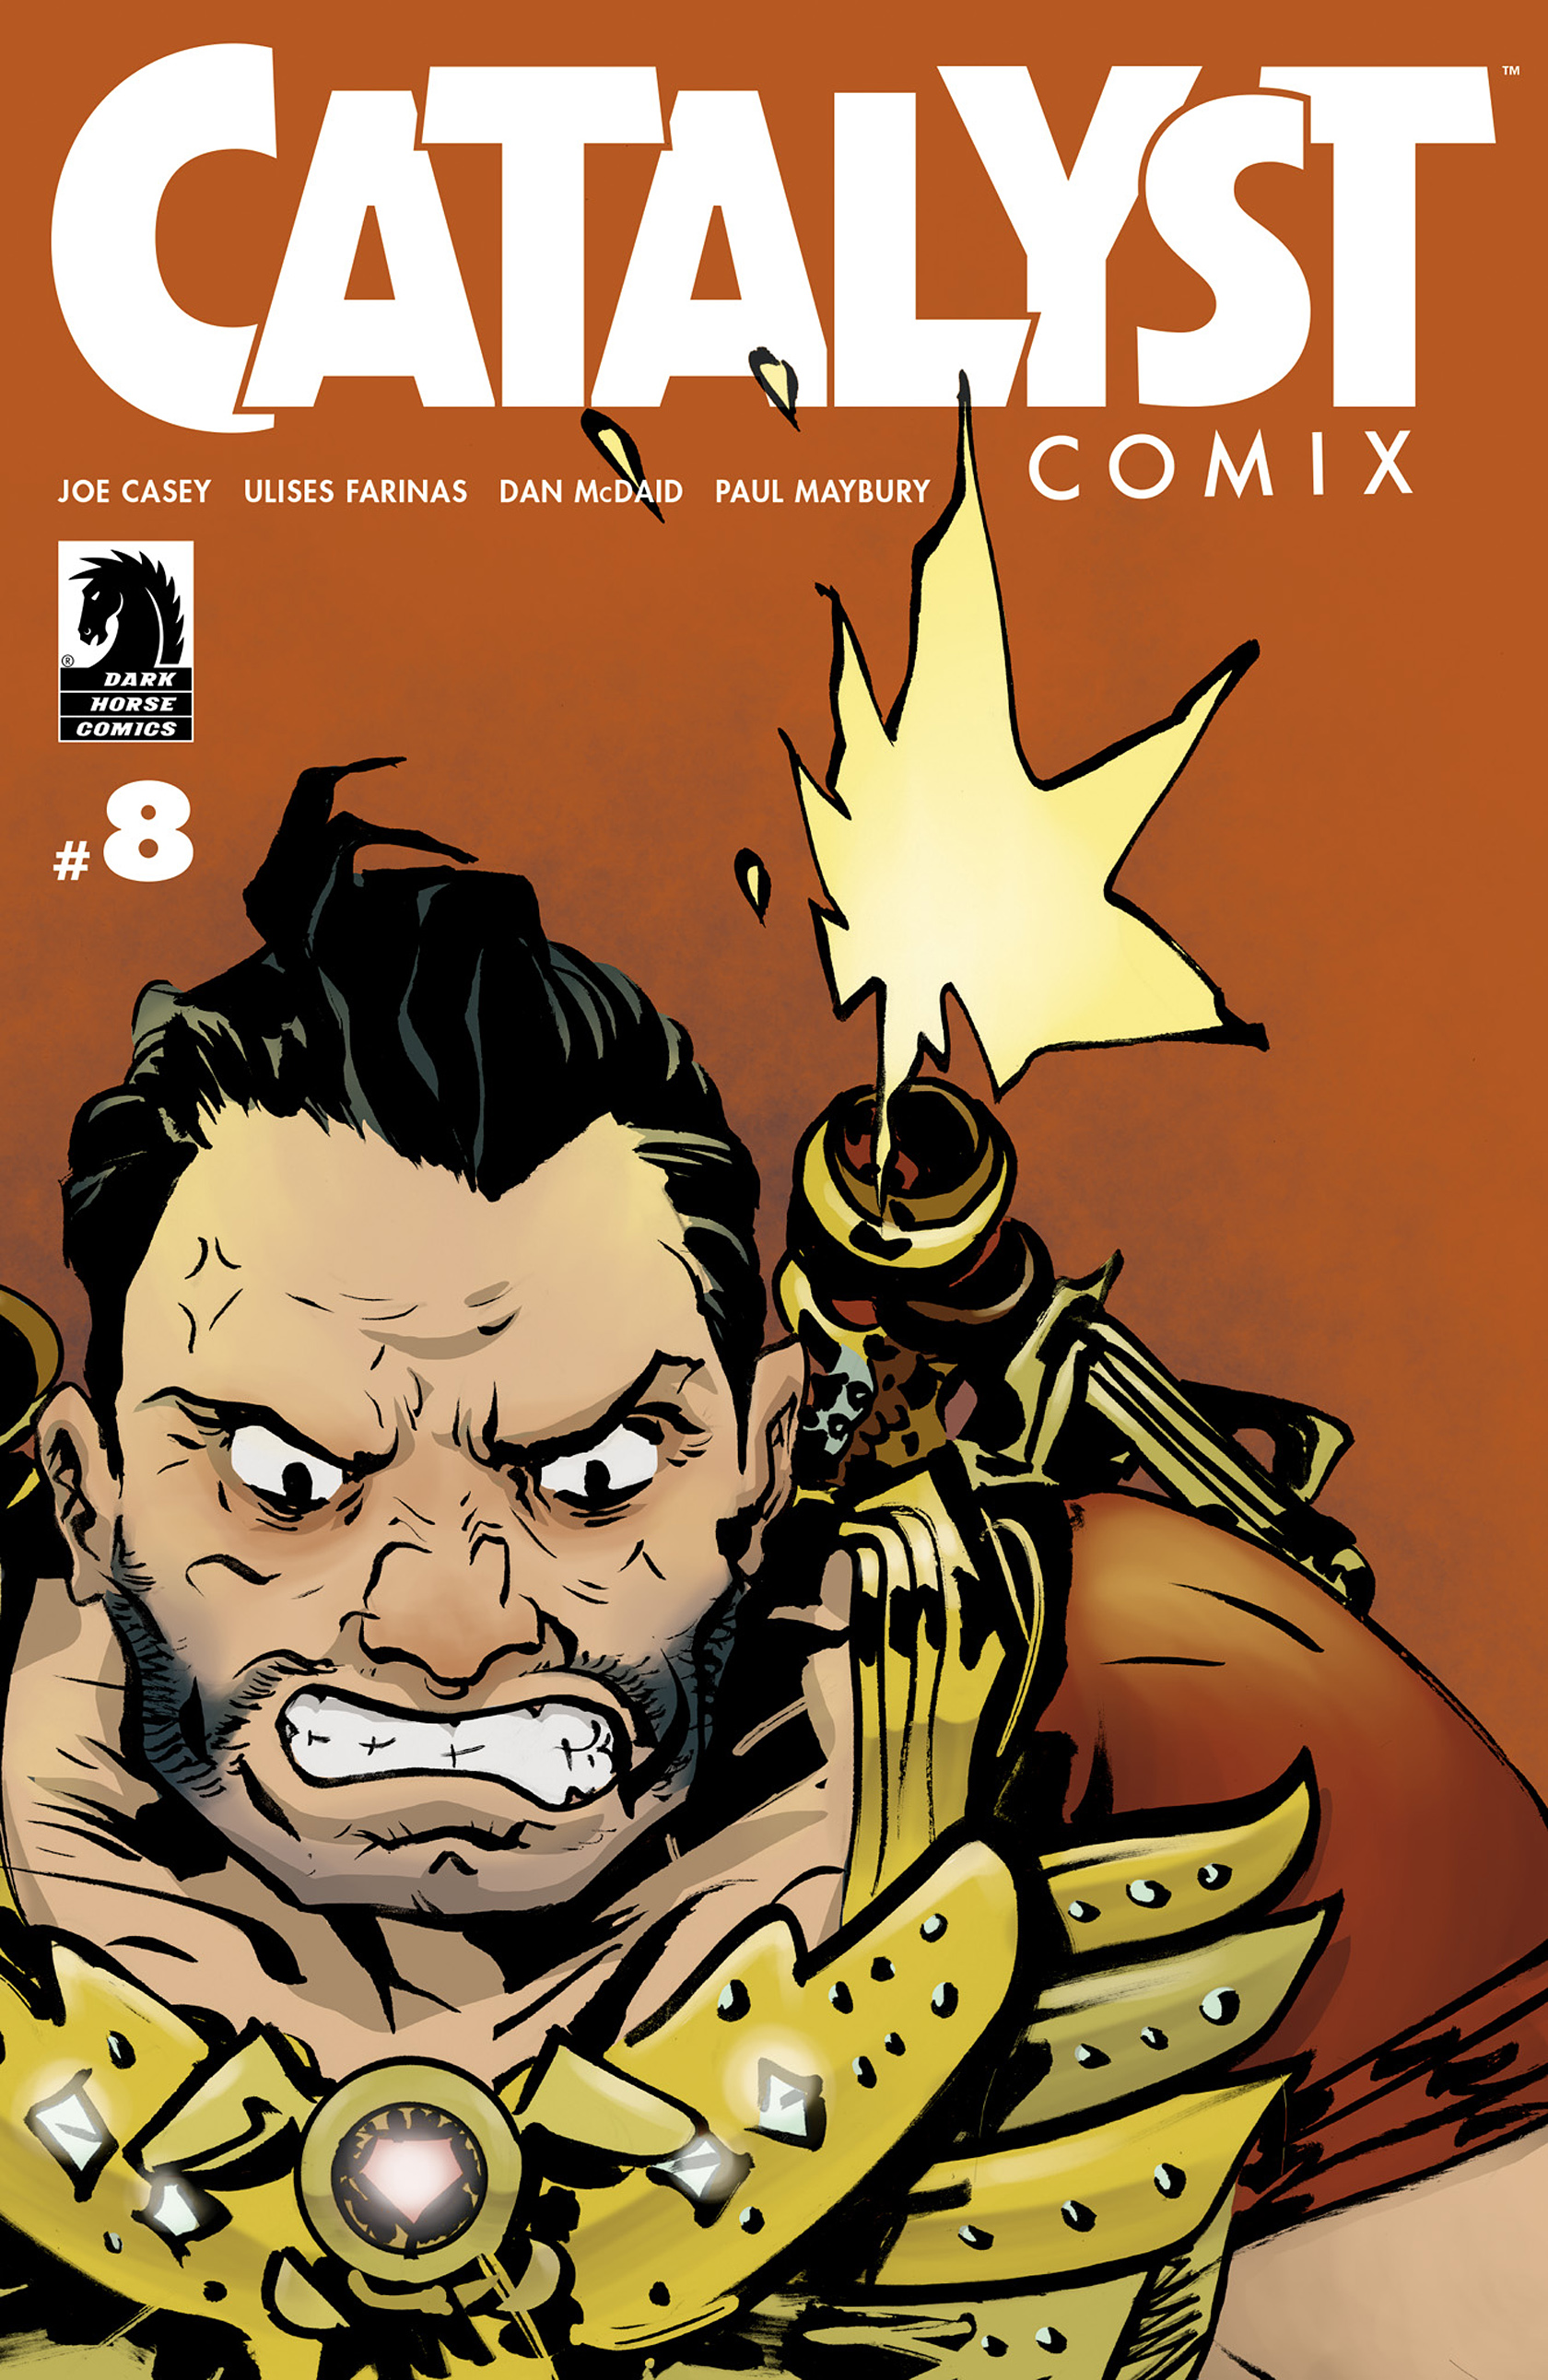 Read online Catalyst Comix comic -  Issue #8 - 1